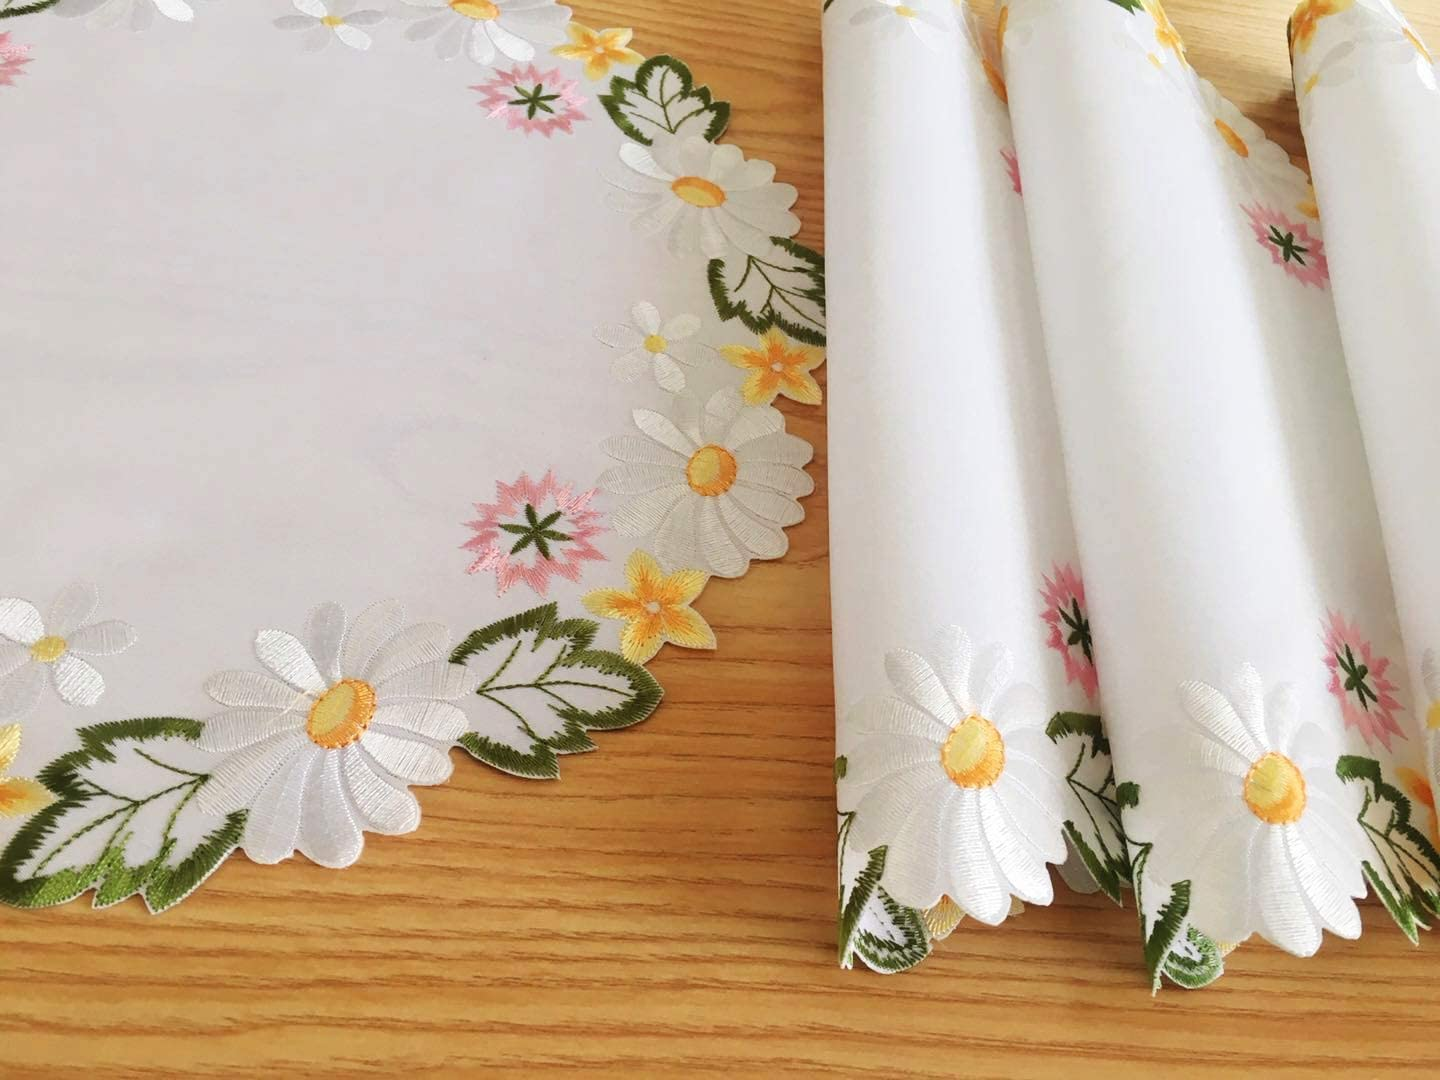 Elegant Decoration Spring Wildflowers Table Linens Embroidered Beautiful Pansy Flower Garden Cut Out Table Place Mats Set of 4, 14 inch Round, Pink Pansy palcemat